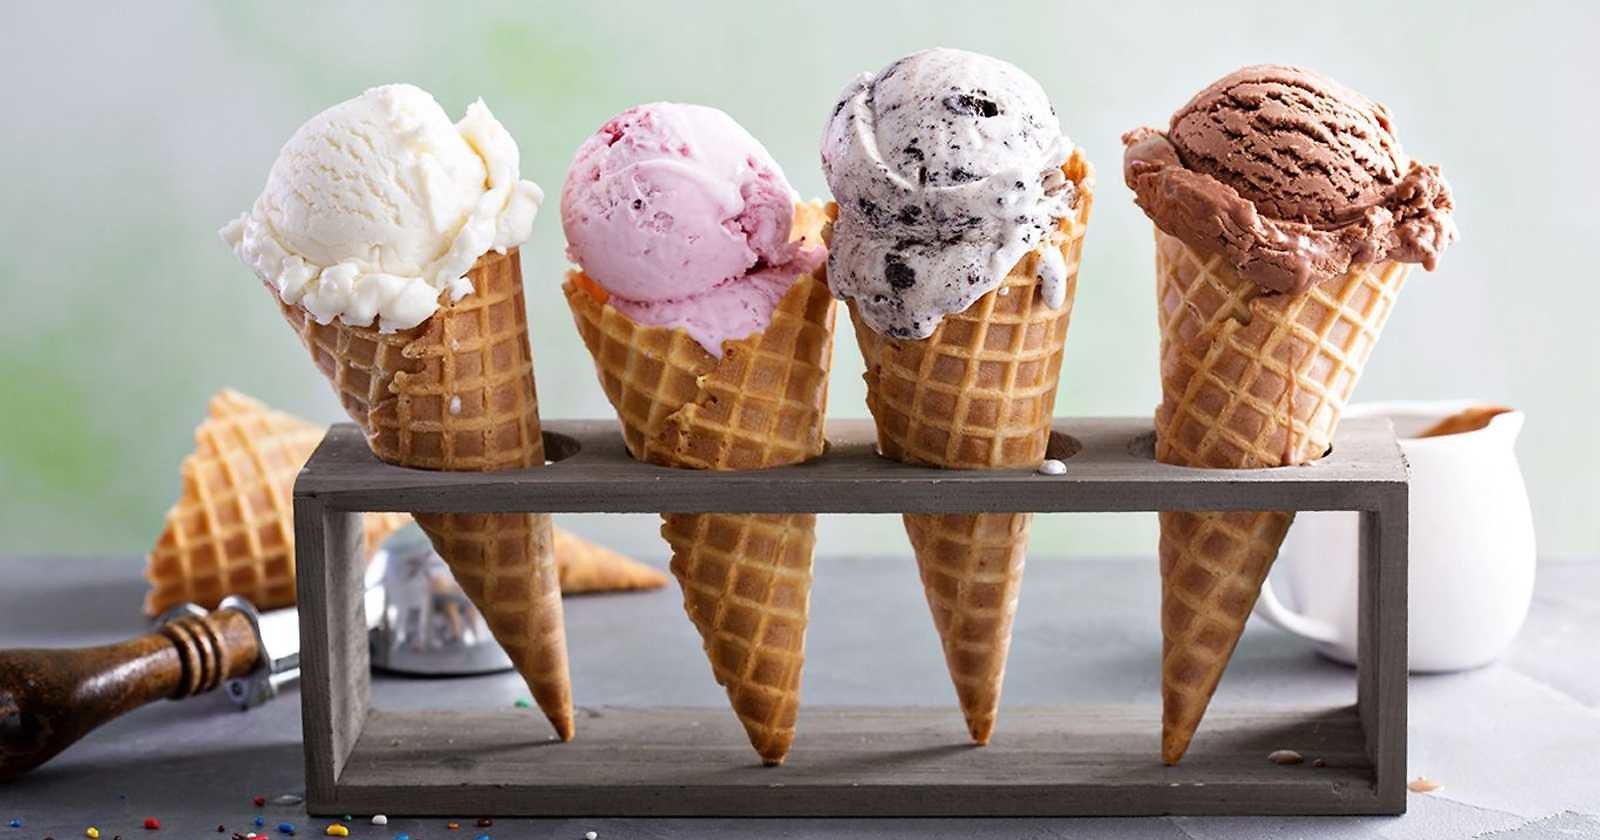 National Ice Cream Day Brings Free Ice Cream, Deals and Contests Sunday